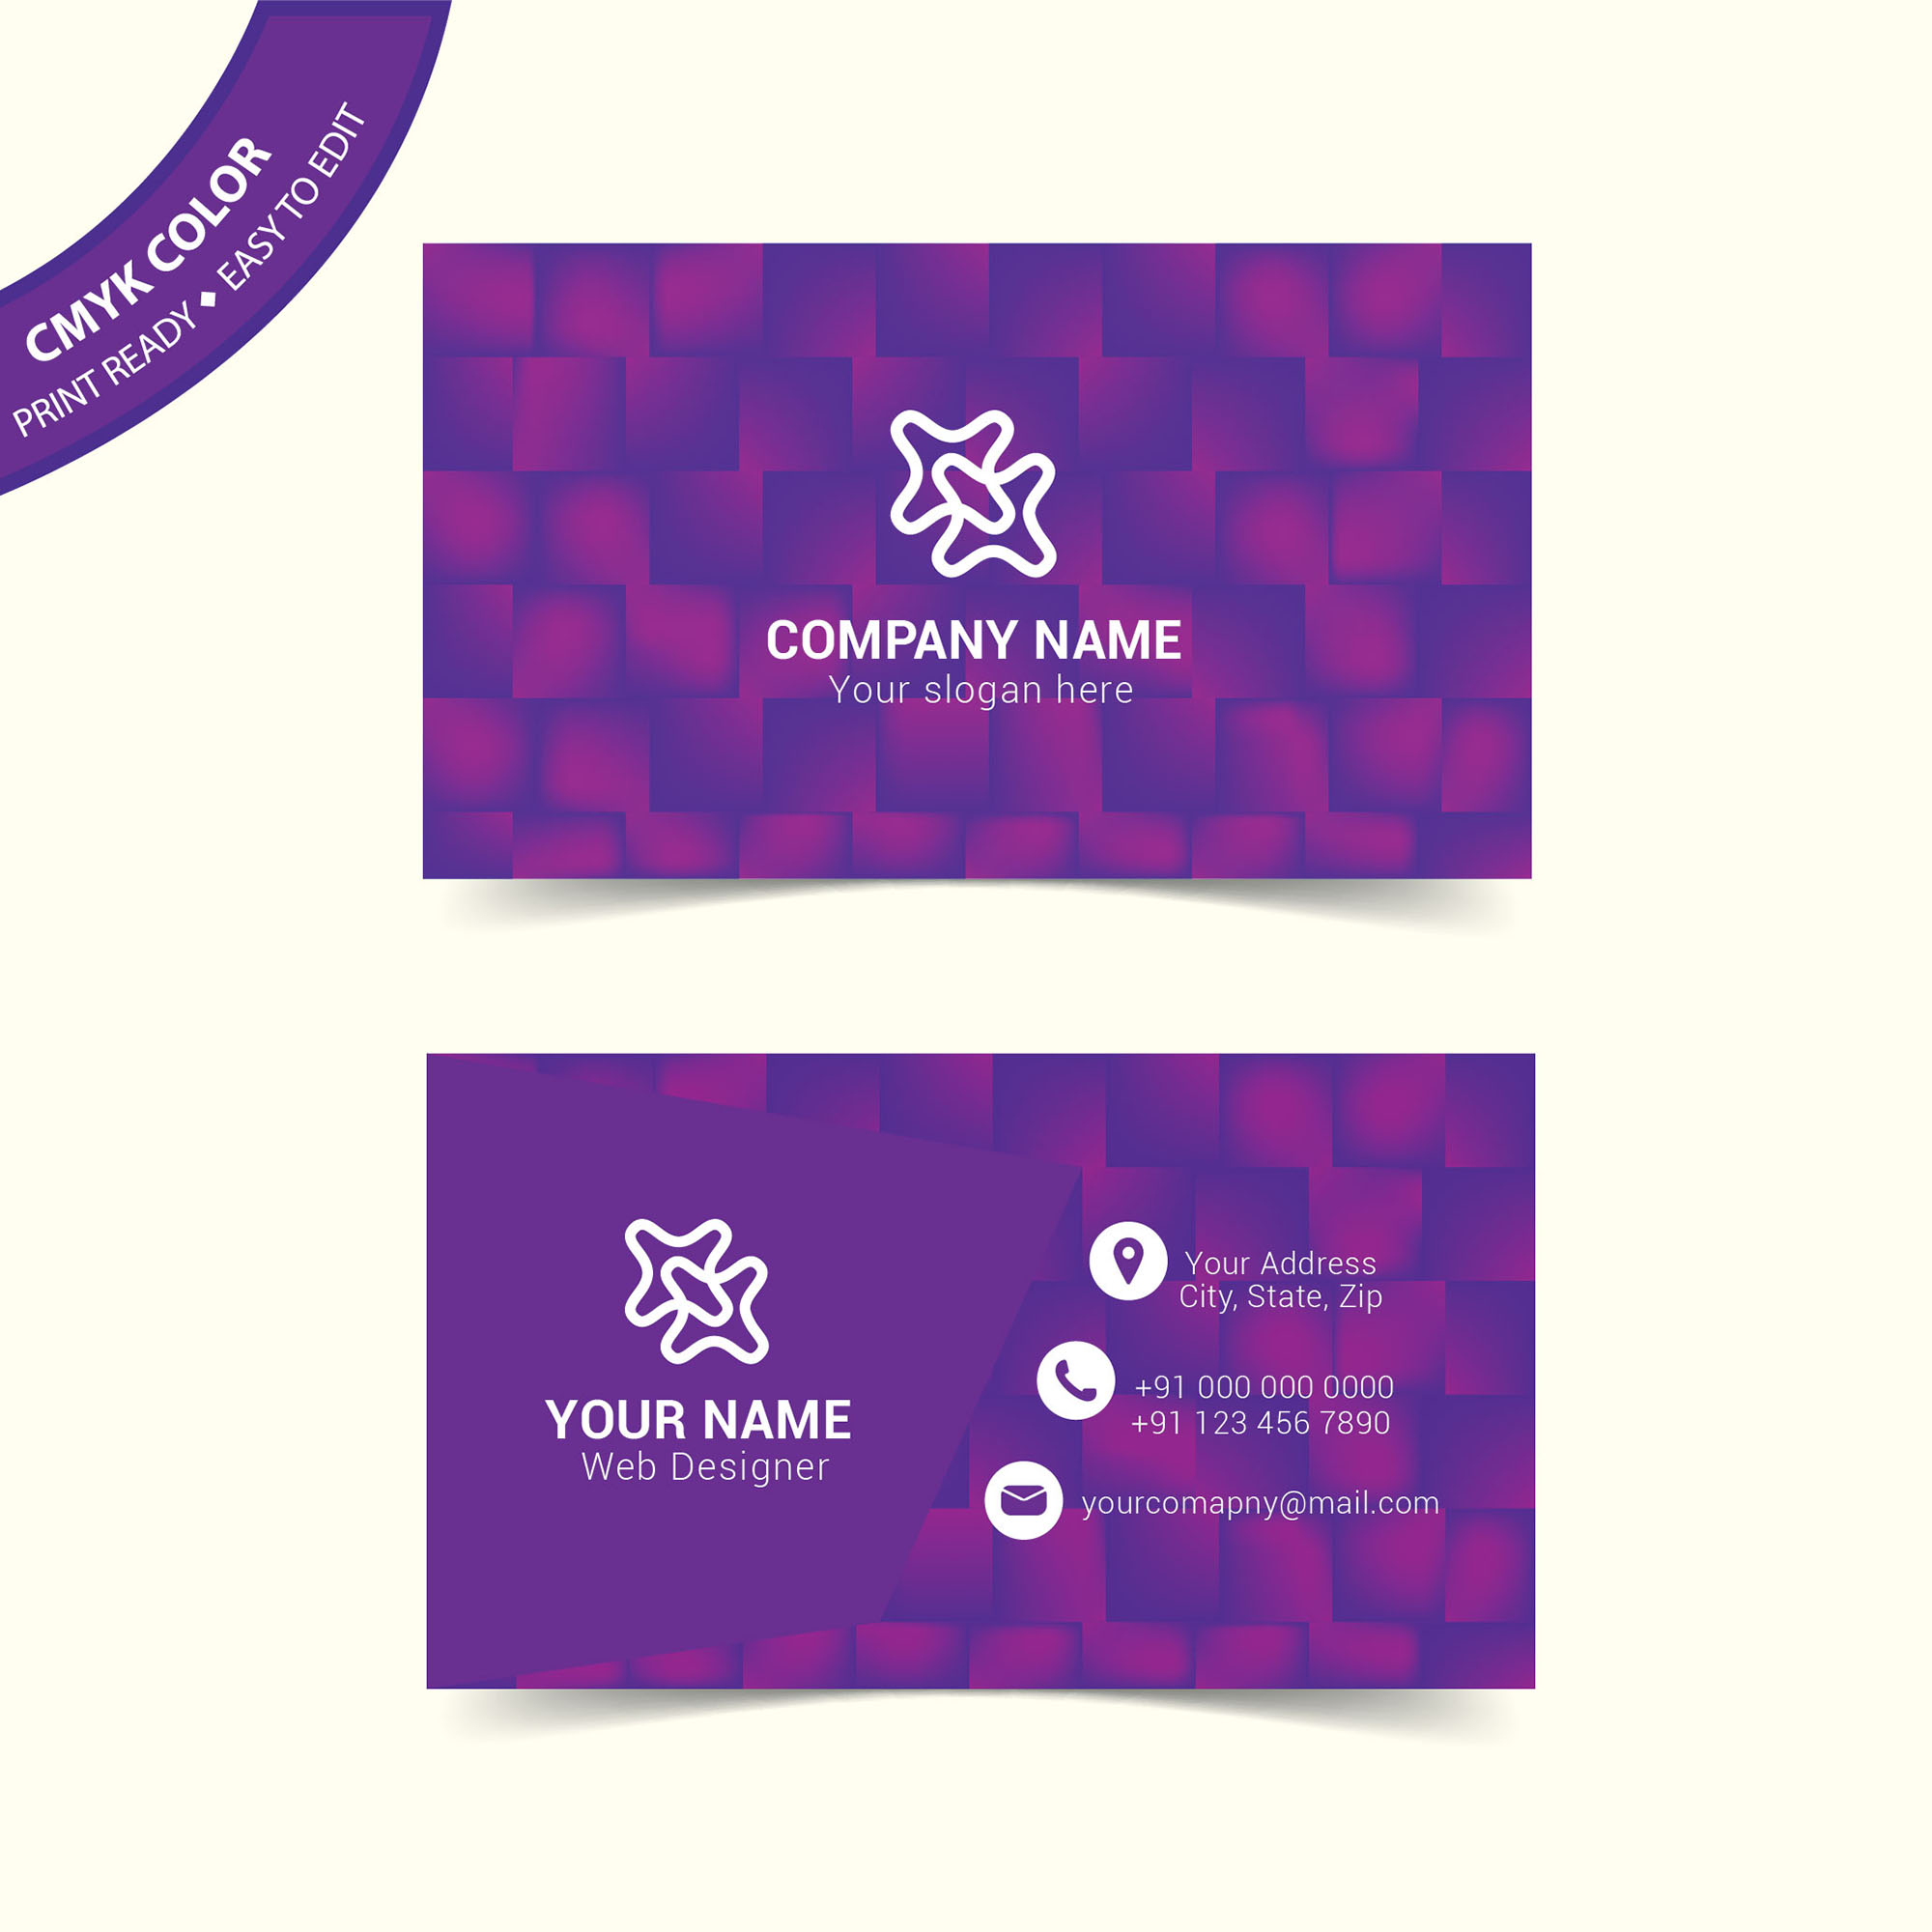 Business card vector background free download wisxi business card business cards business card design business card template design templates reheart Gallery